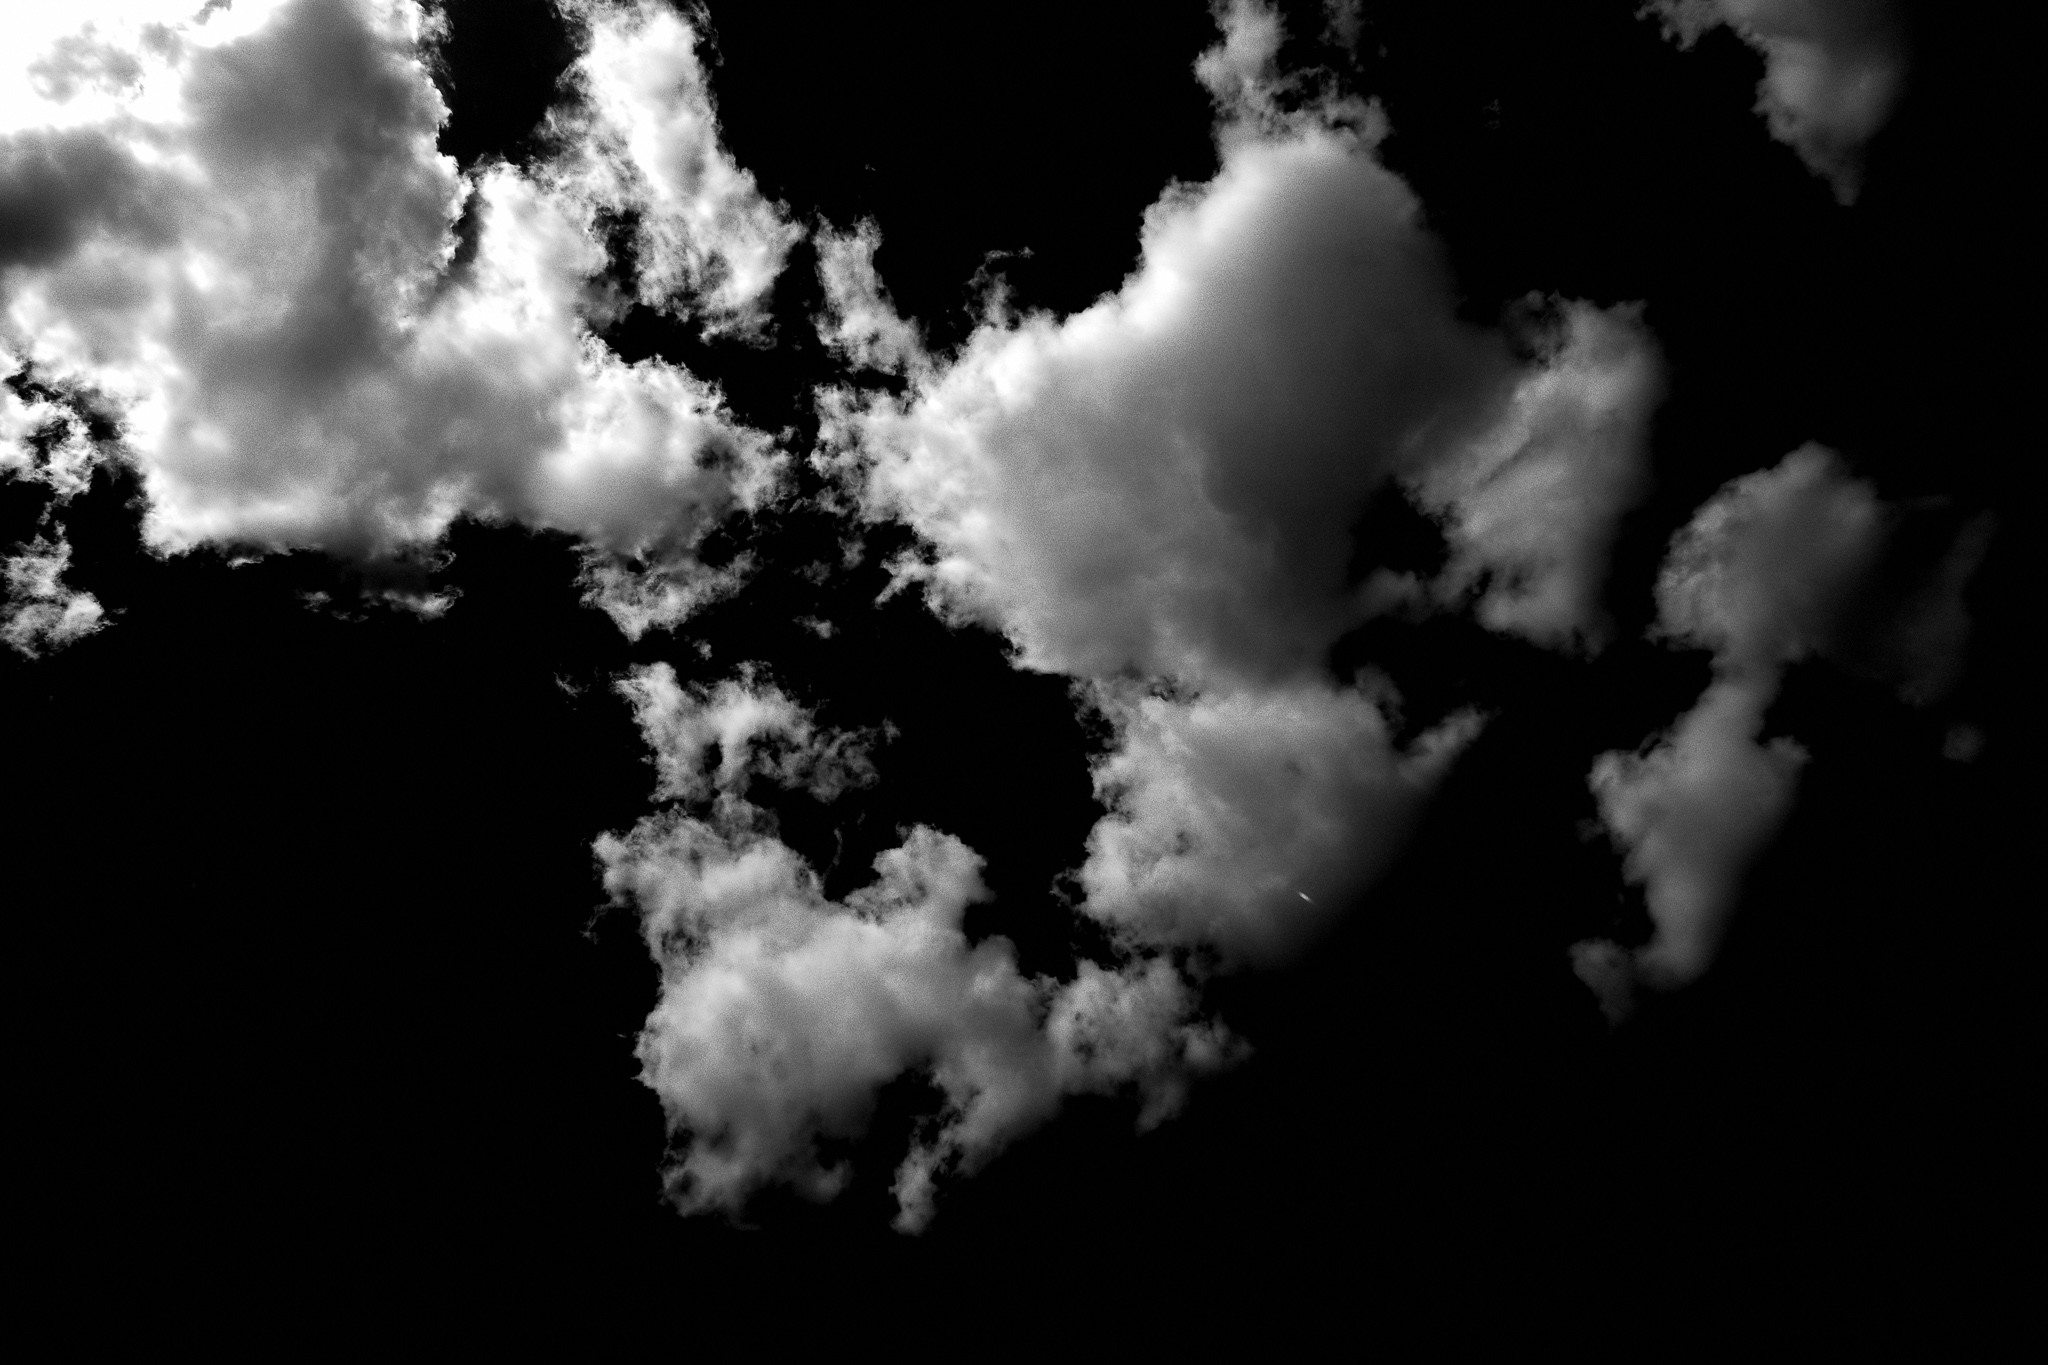 In Praise of Photographing Clouds